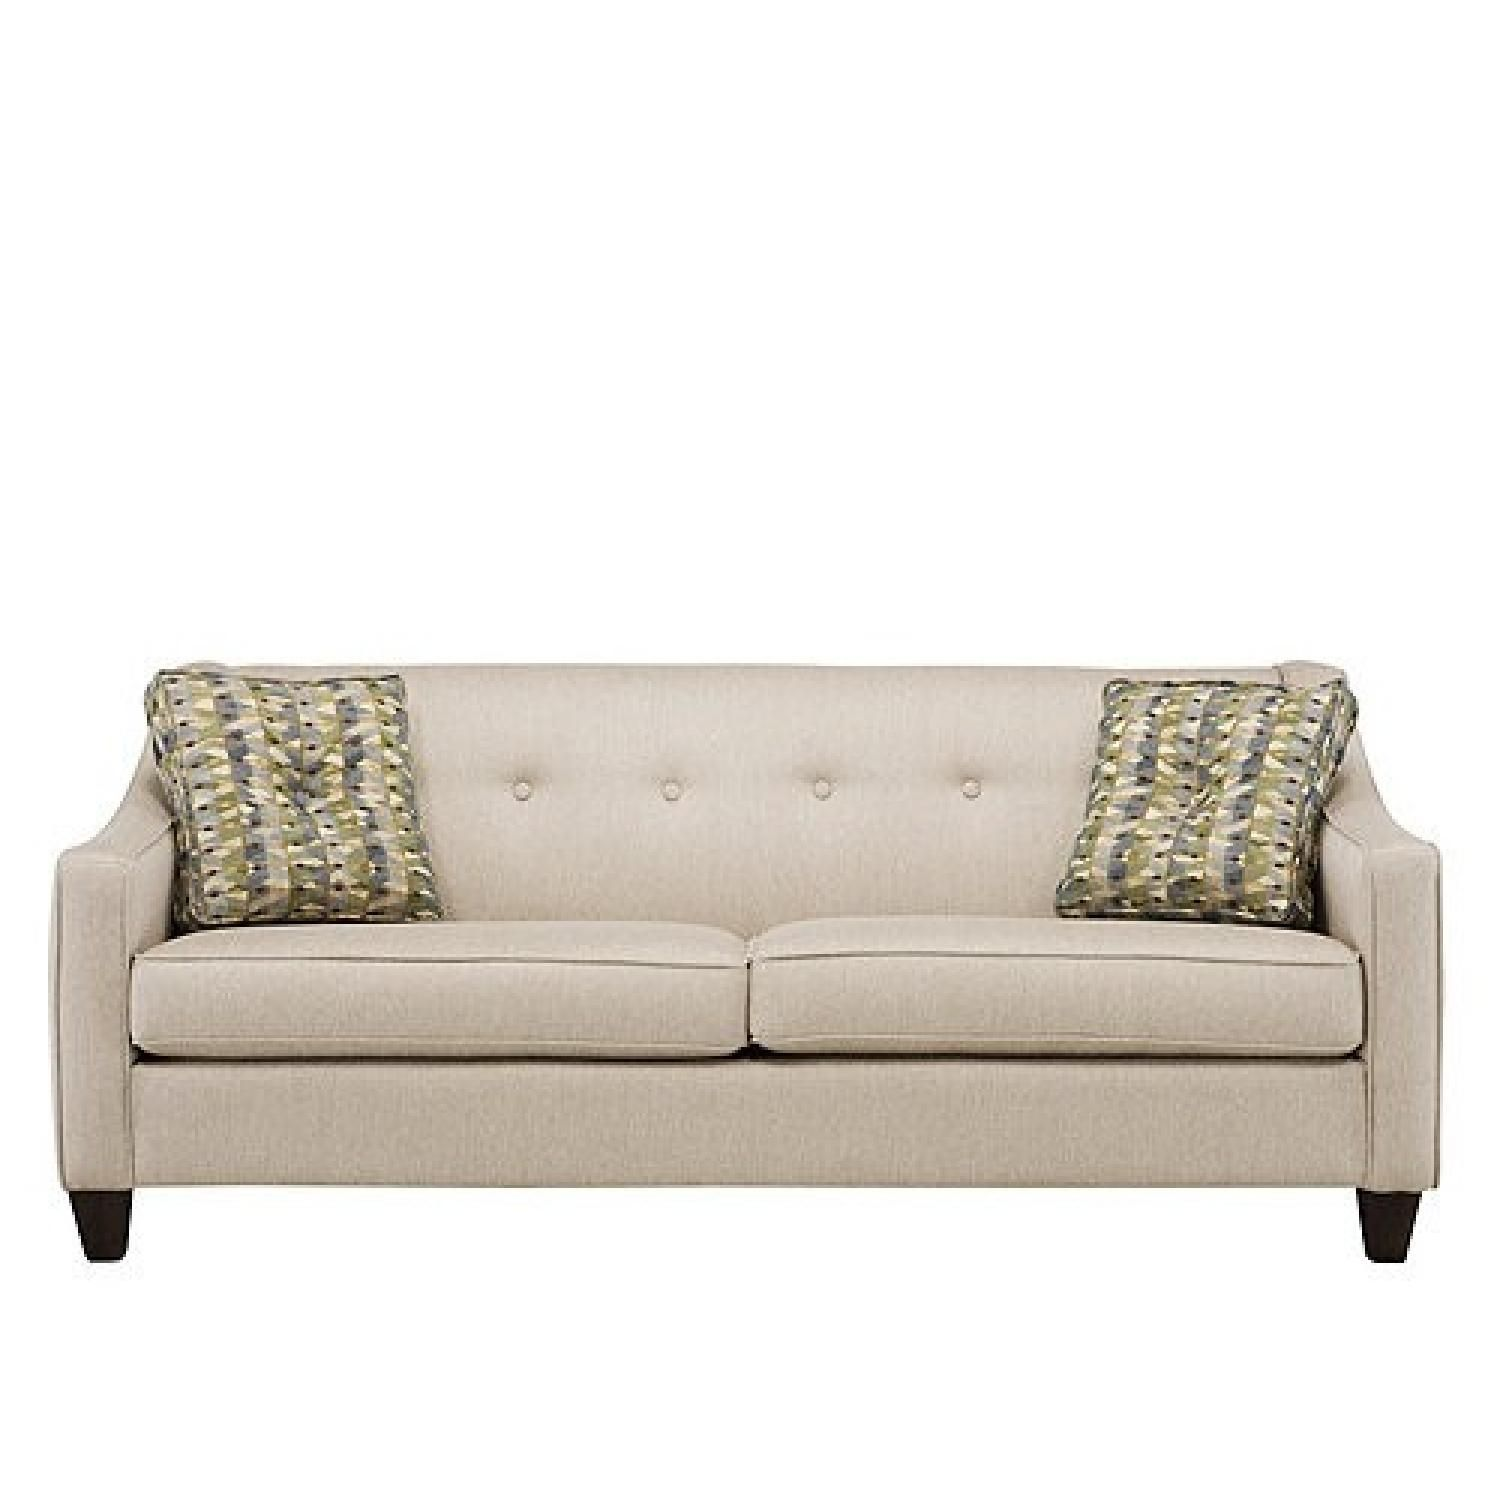 Beautiful Raymour & Flanigan Couch Sofa, Furniture